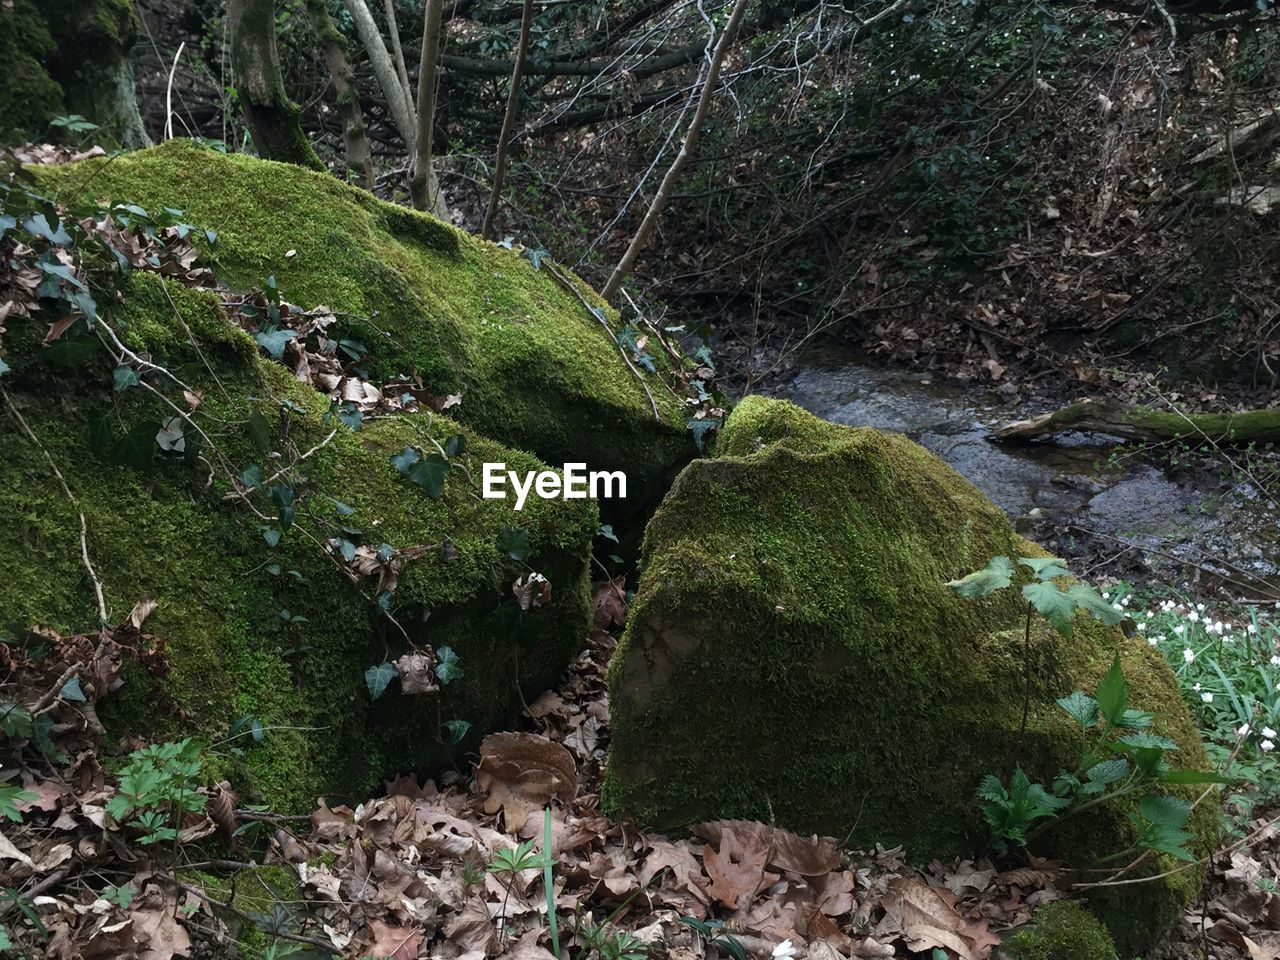 MOSS GROWING ON ROCK AT FOREST